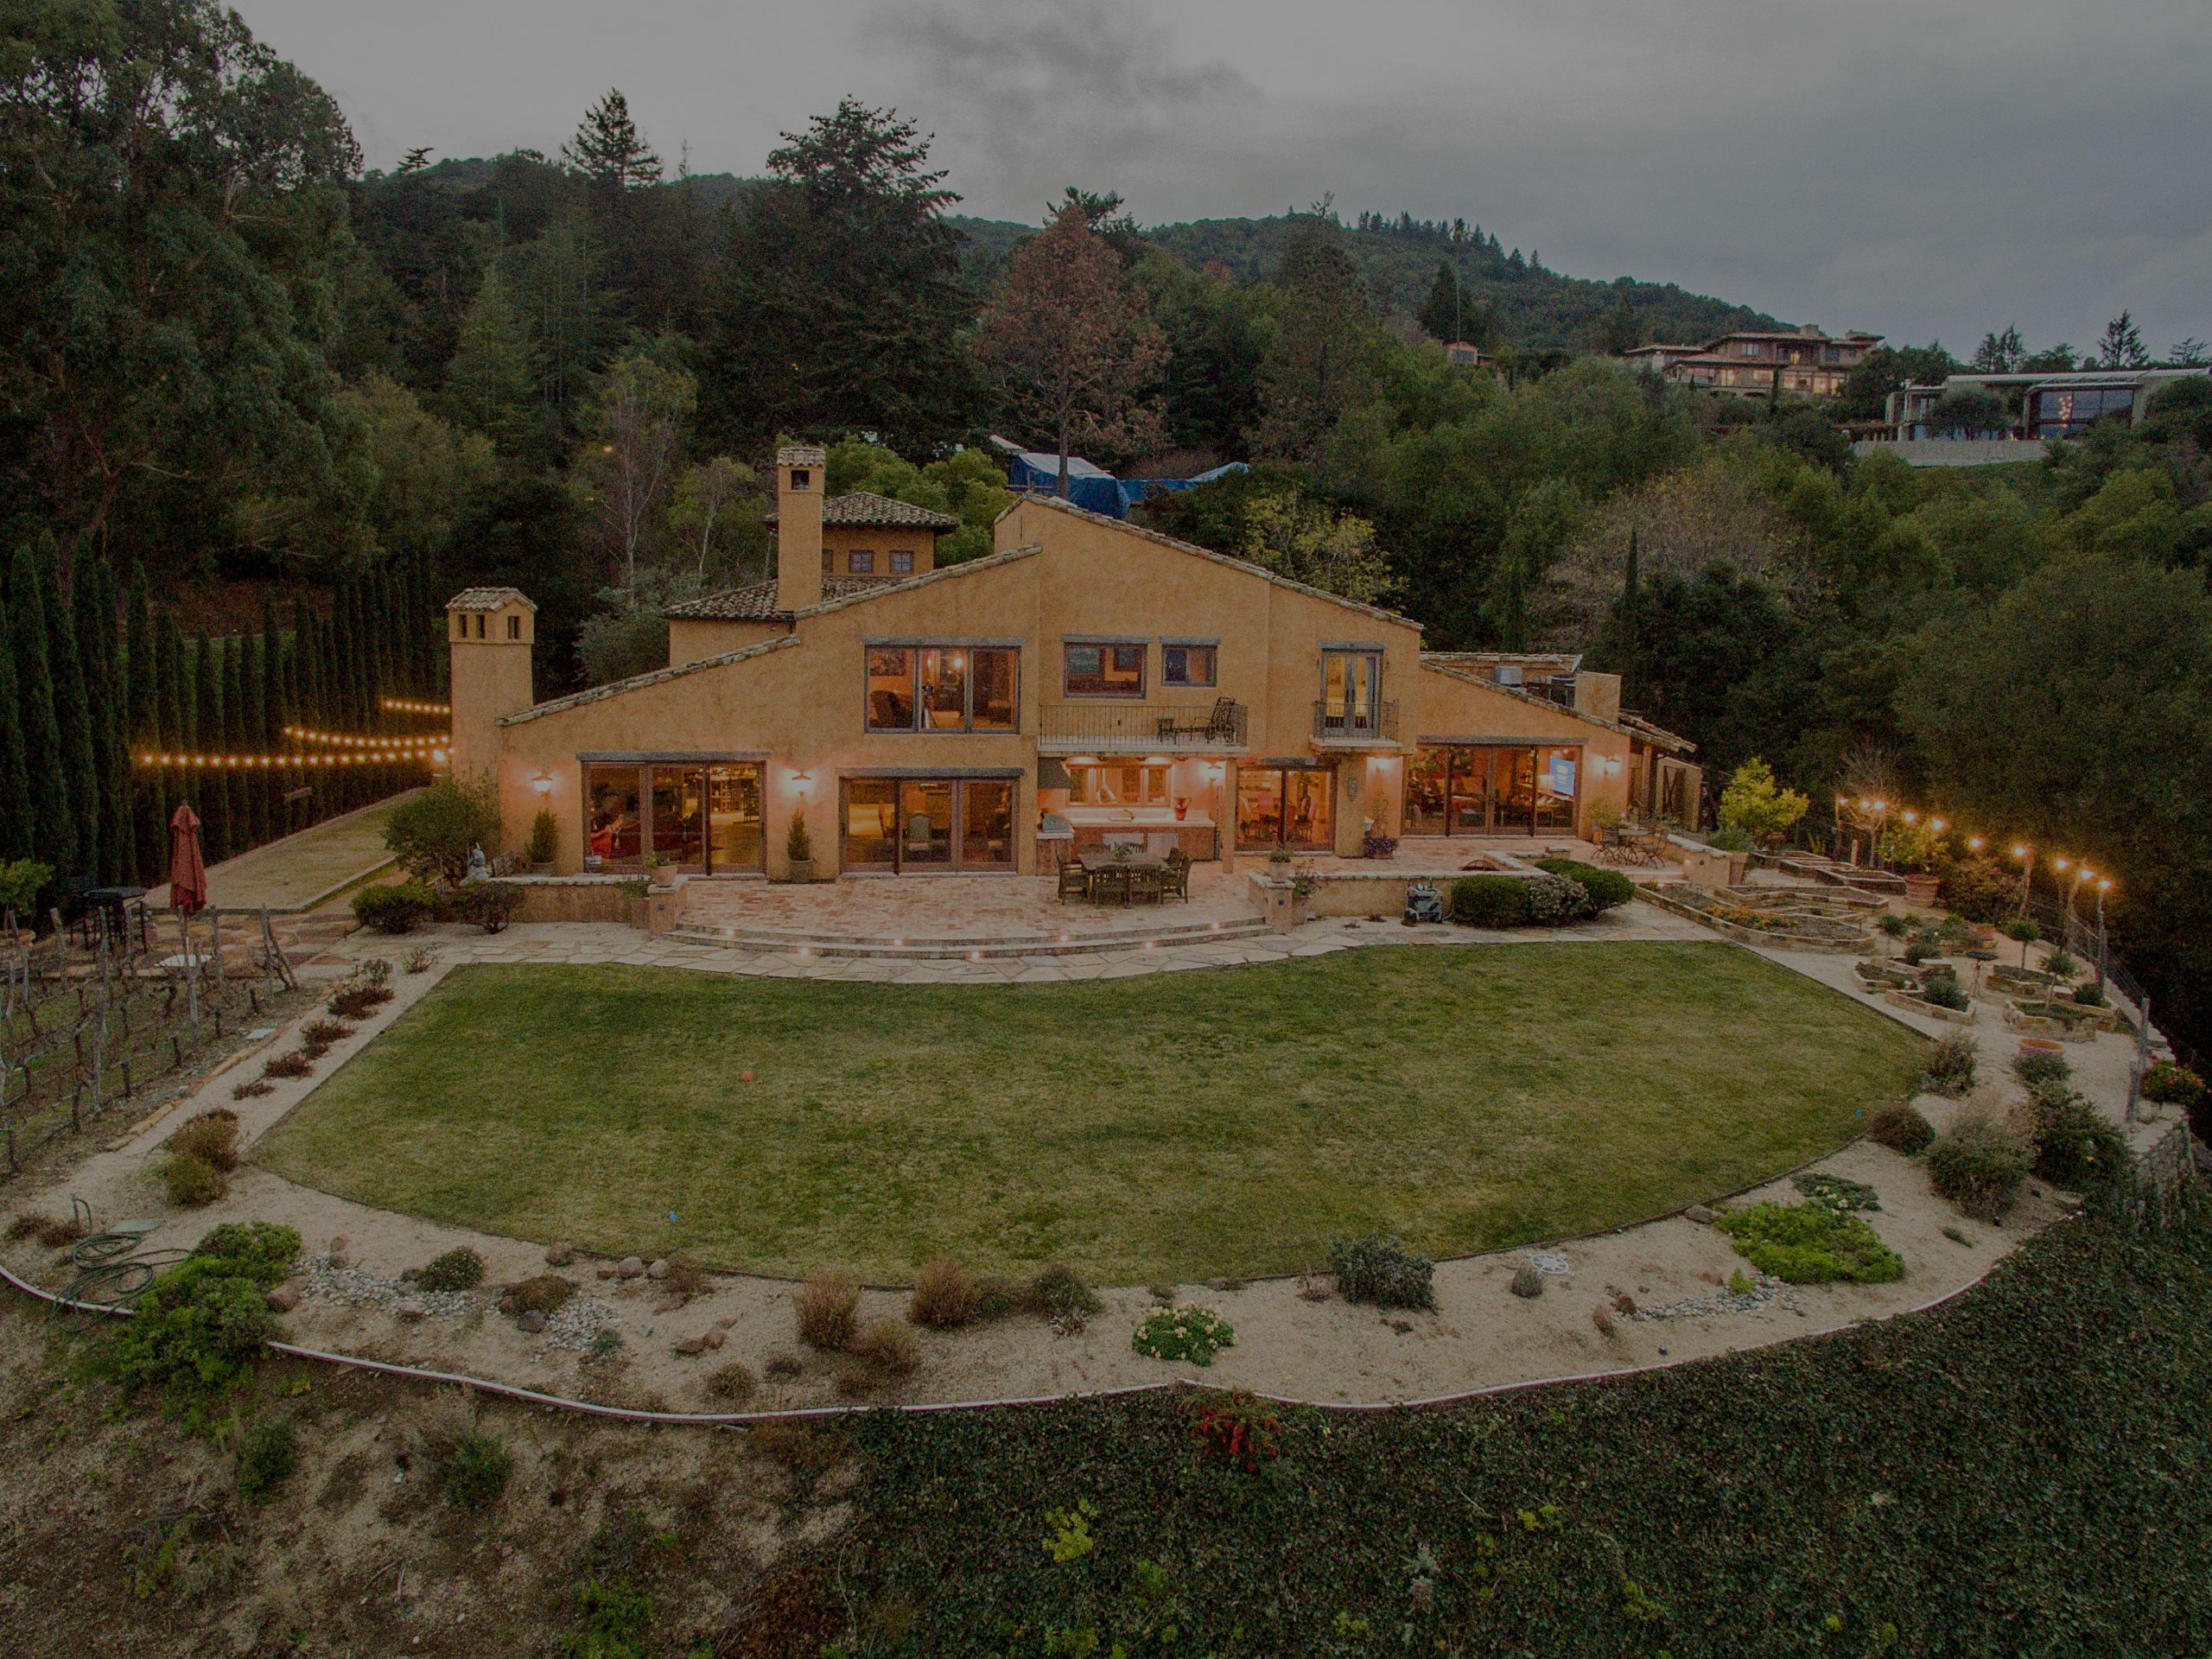 Sold for $4,465,000 | Los Serenos Robles, Los Gatos